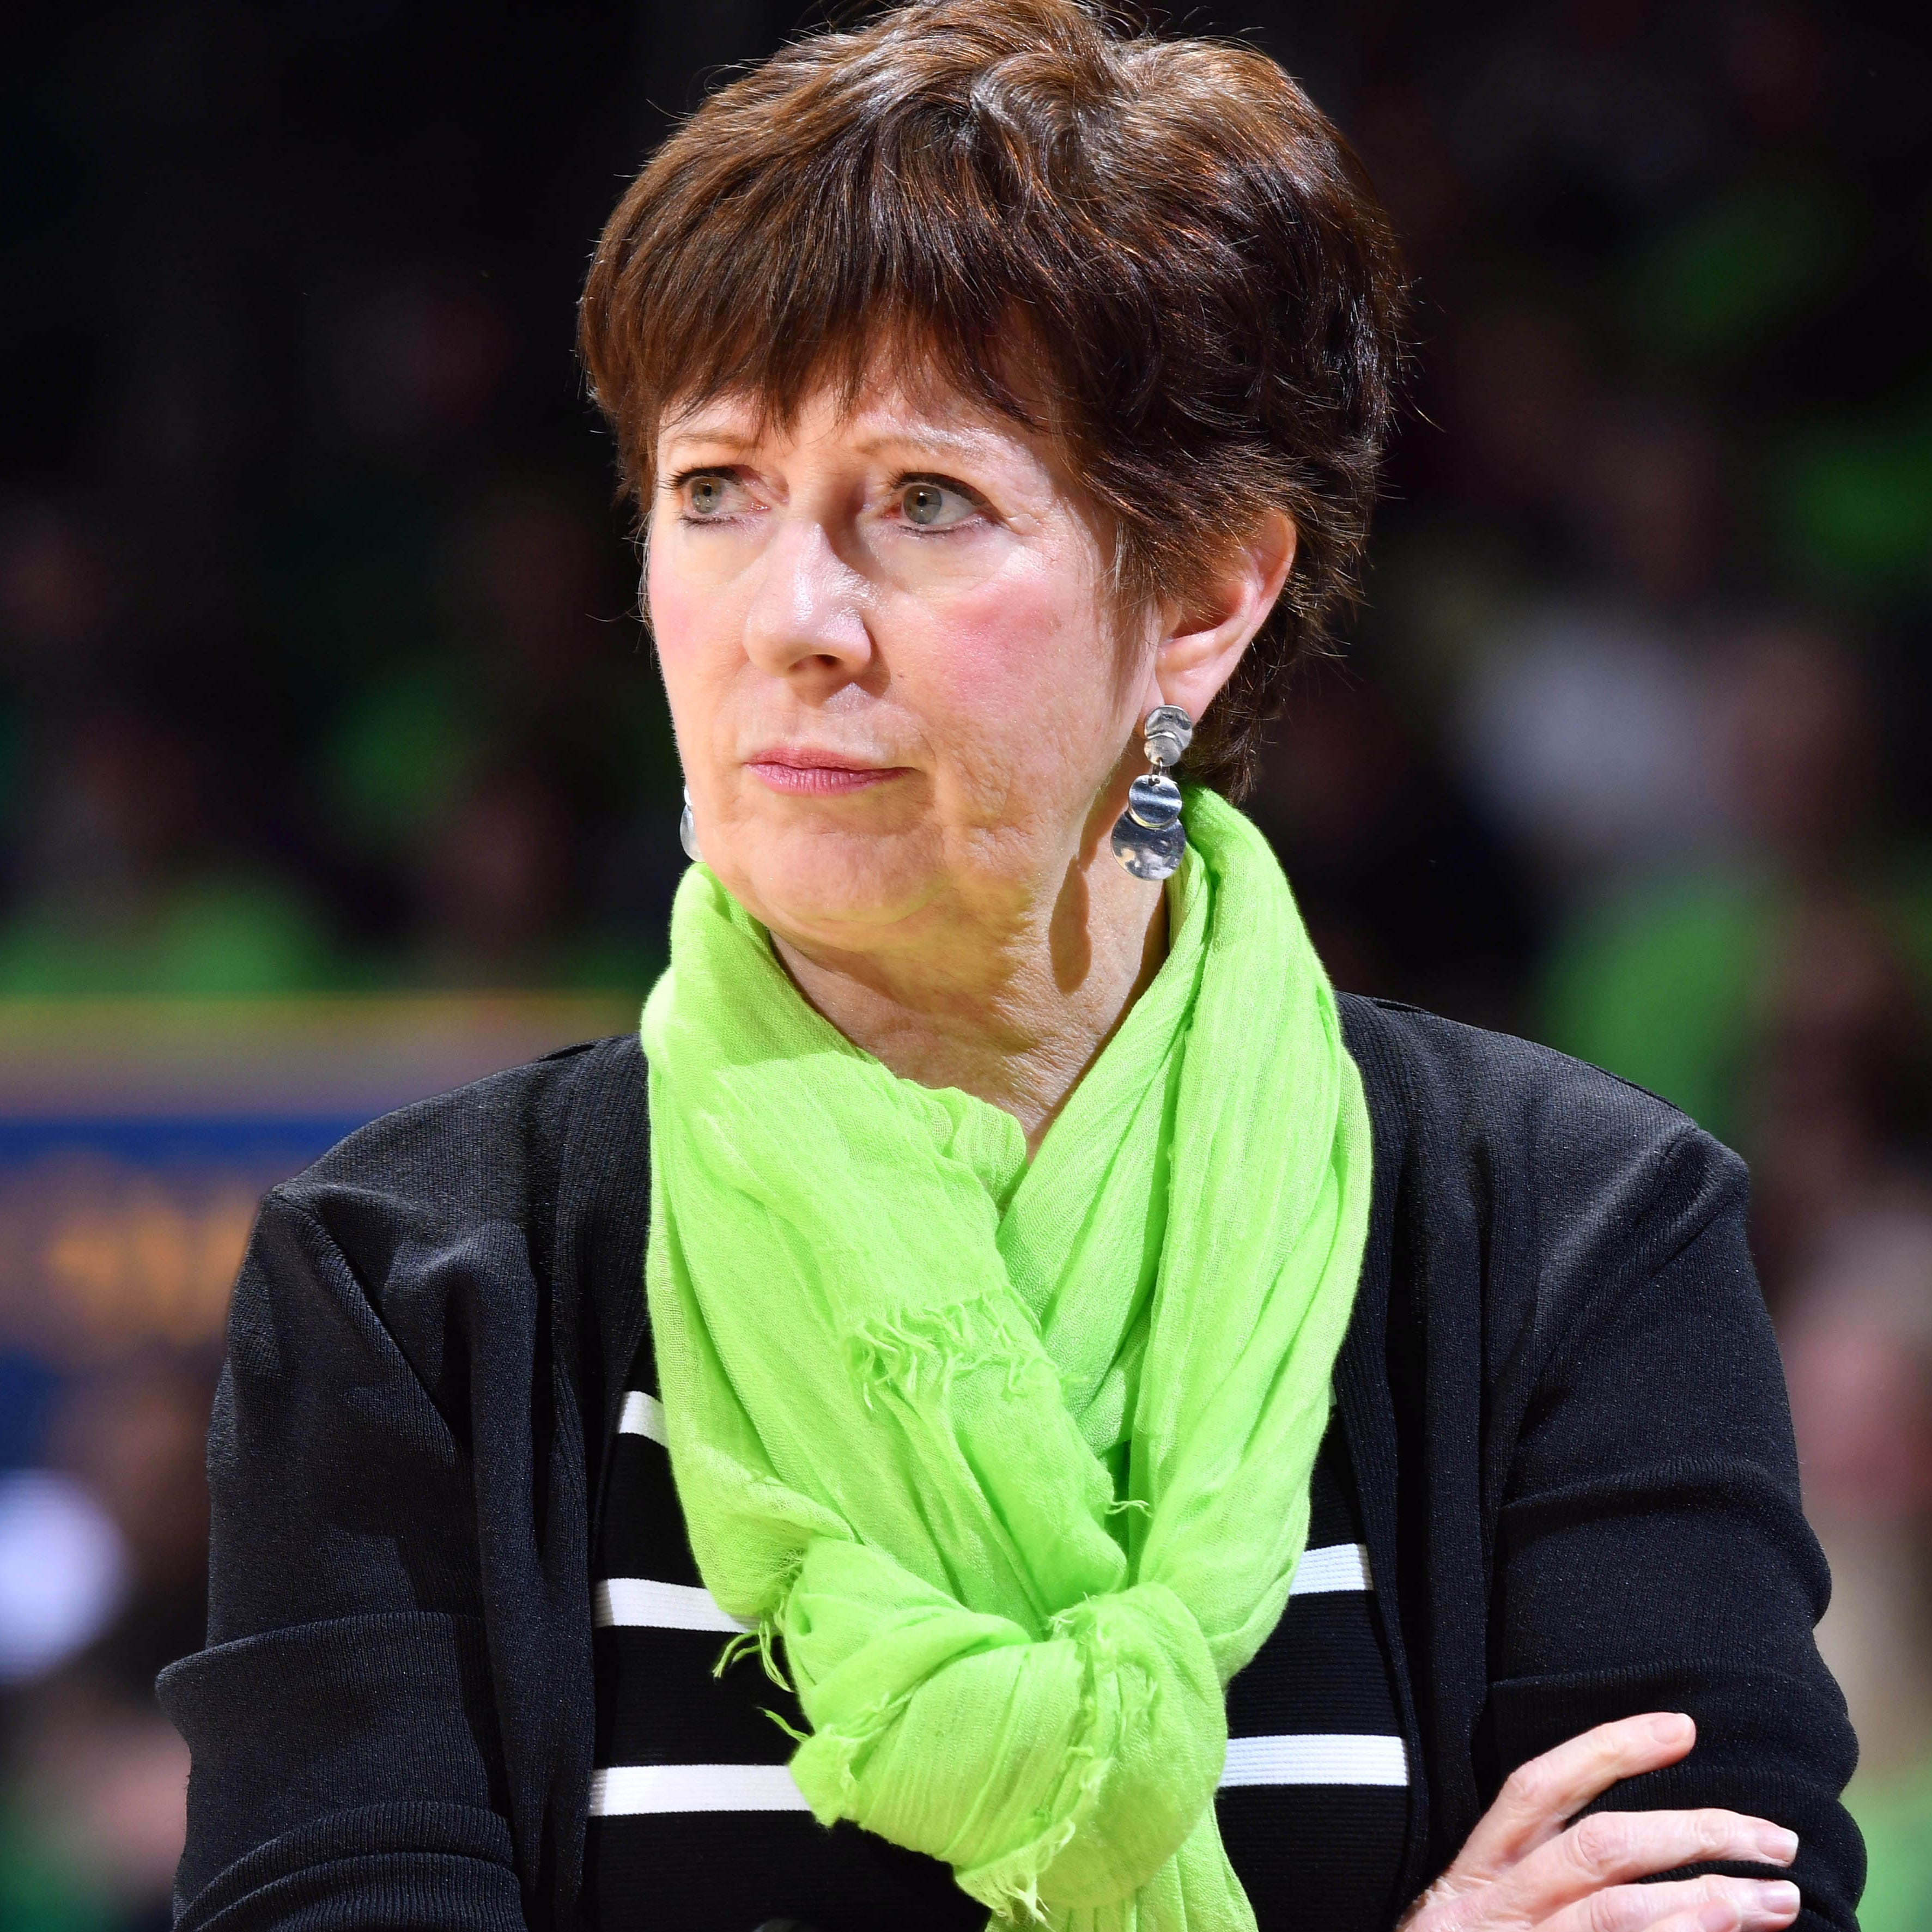 Notre Dame's Muffet McGraw delivers impassioned speech on gender inequality at Final Four